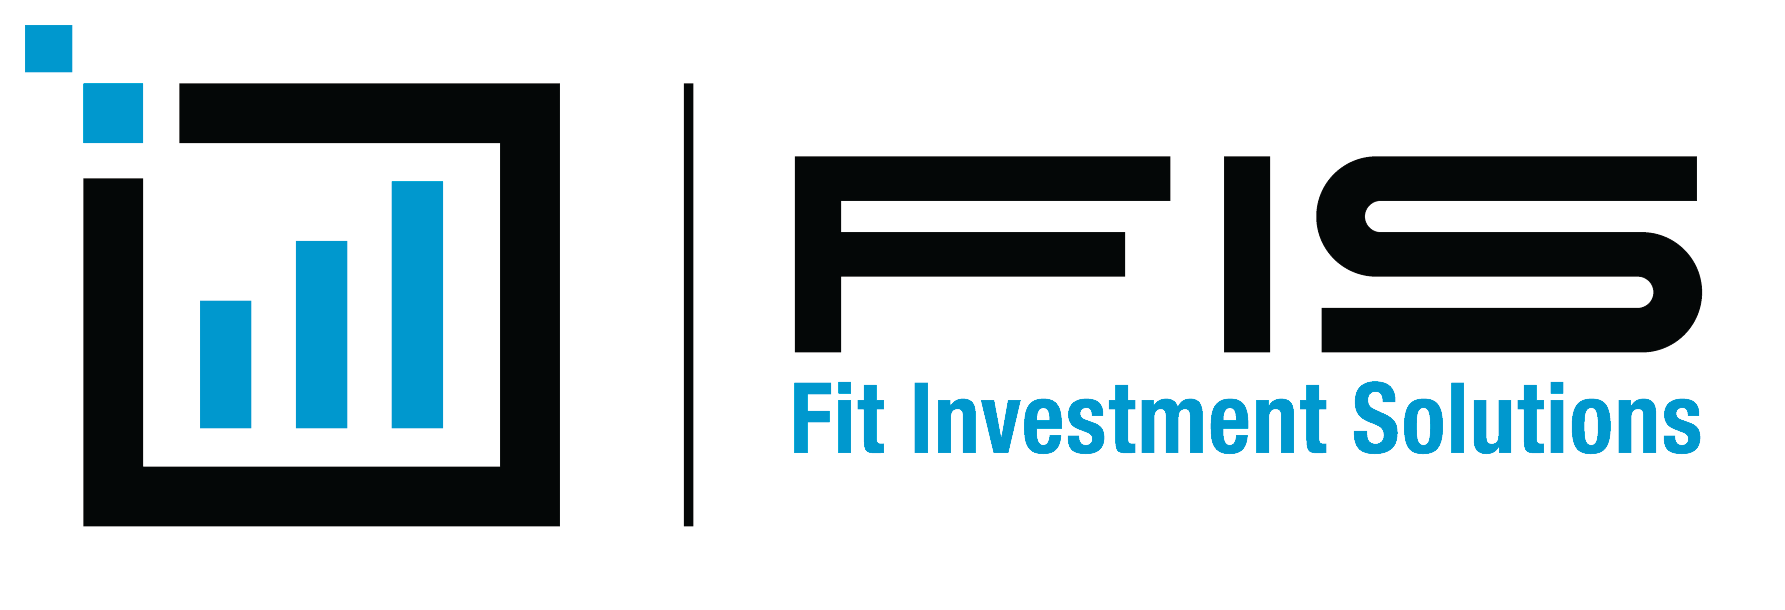 Fit Investment Solutions